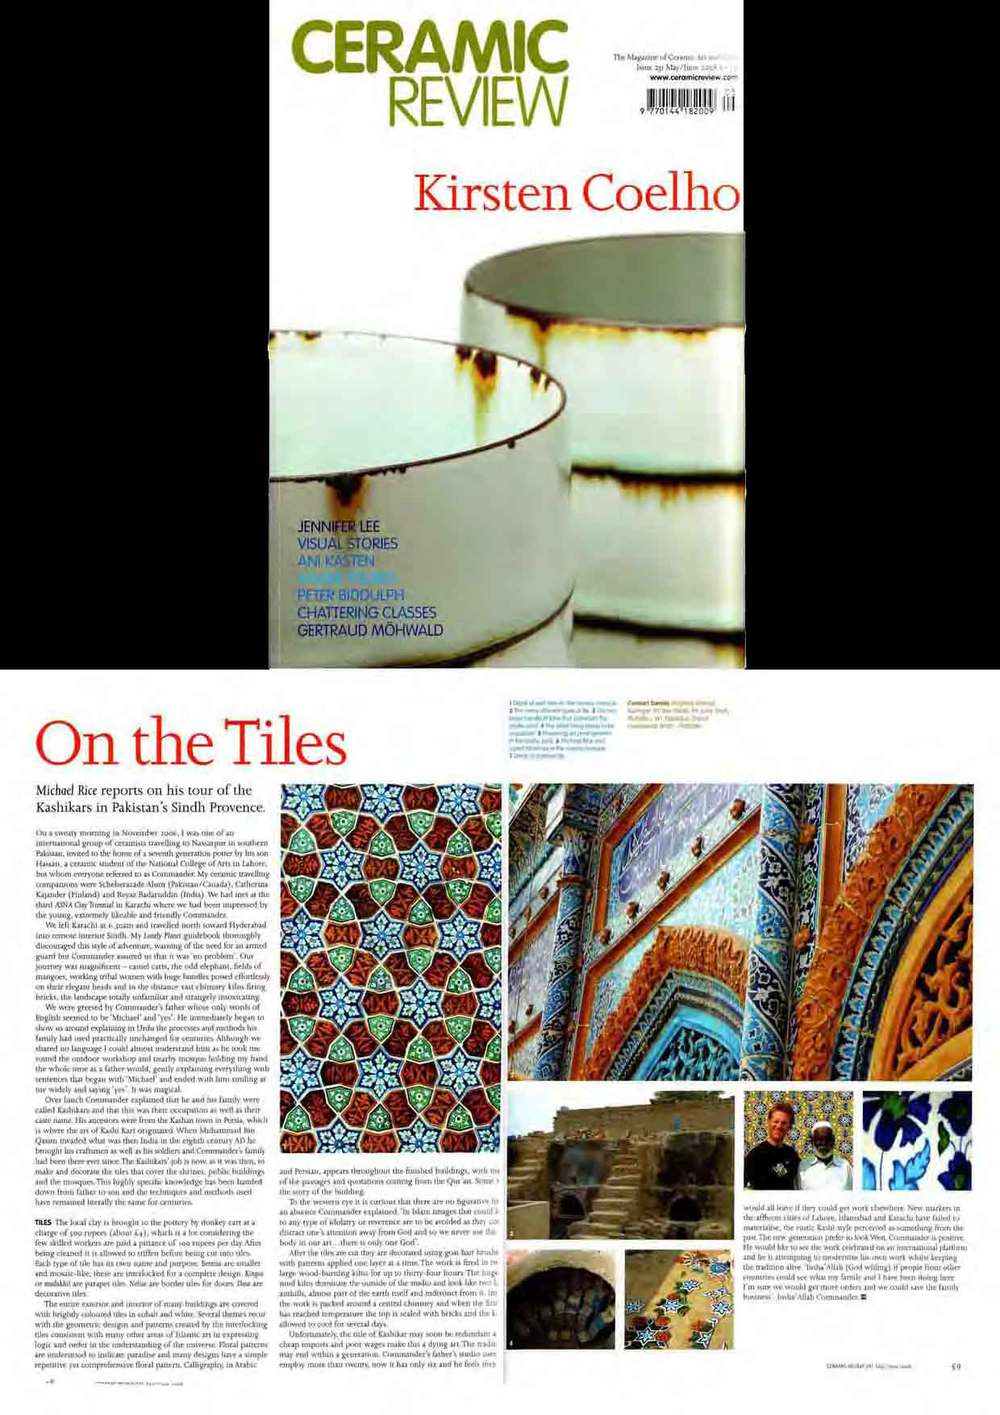 Ceramic Review article 2008